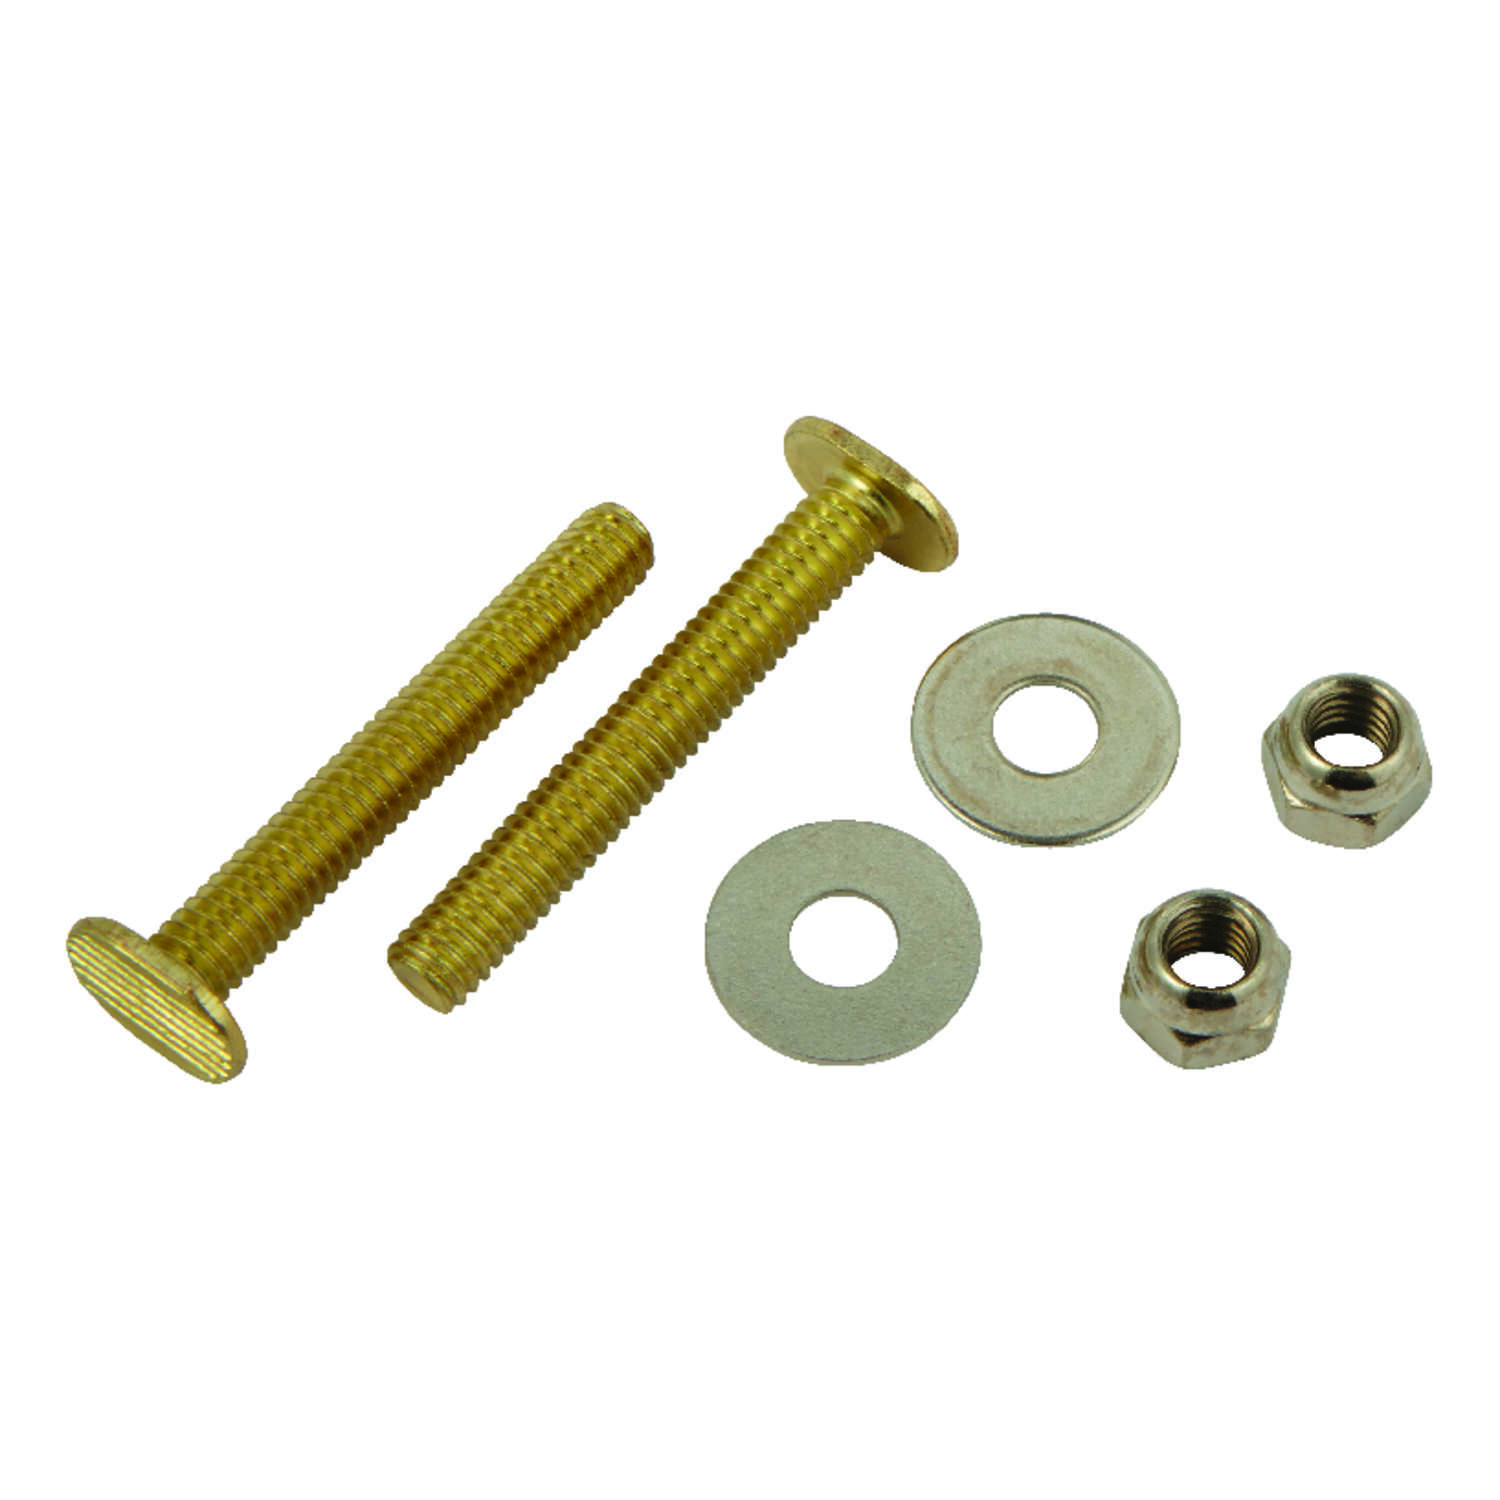 Ace  Toilet Bolt Set  5/16 in. H x 2-1/4 in. L Brass